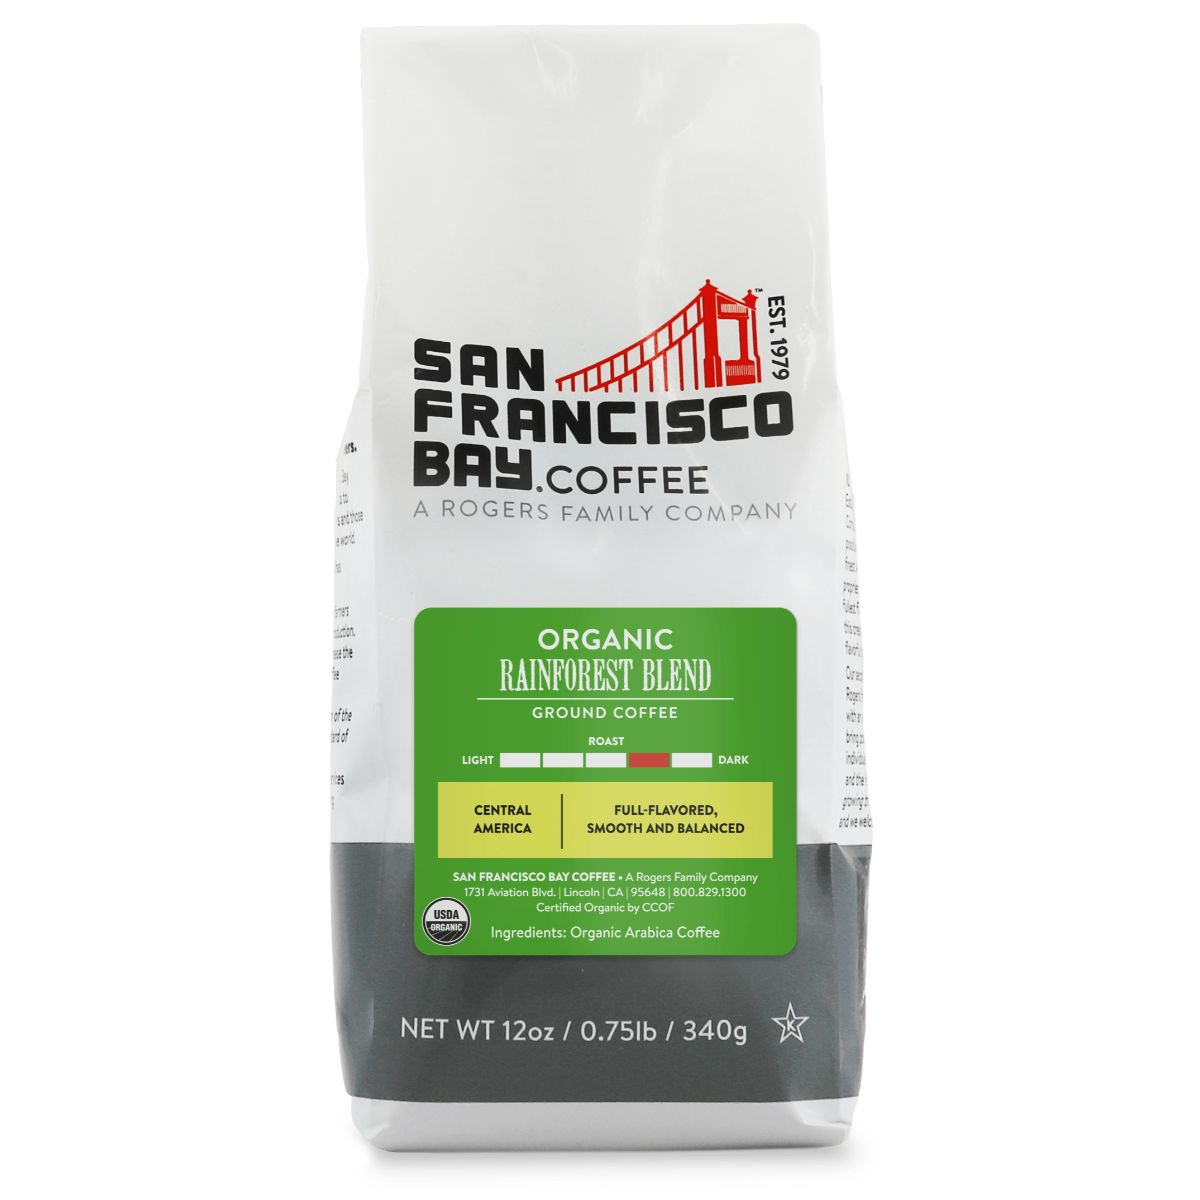 Organic Rainforest Blend, Ground, 12 oz Bag